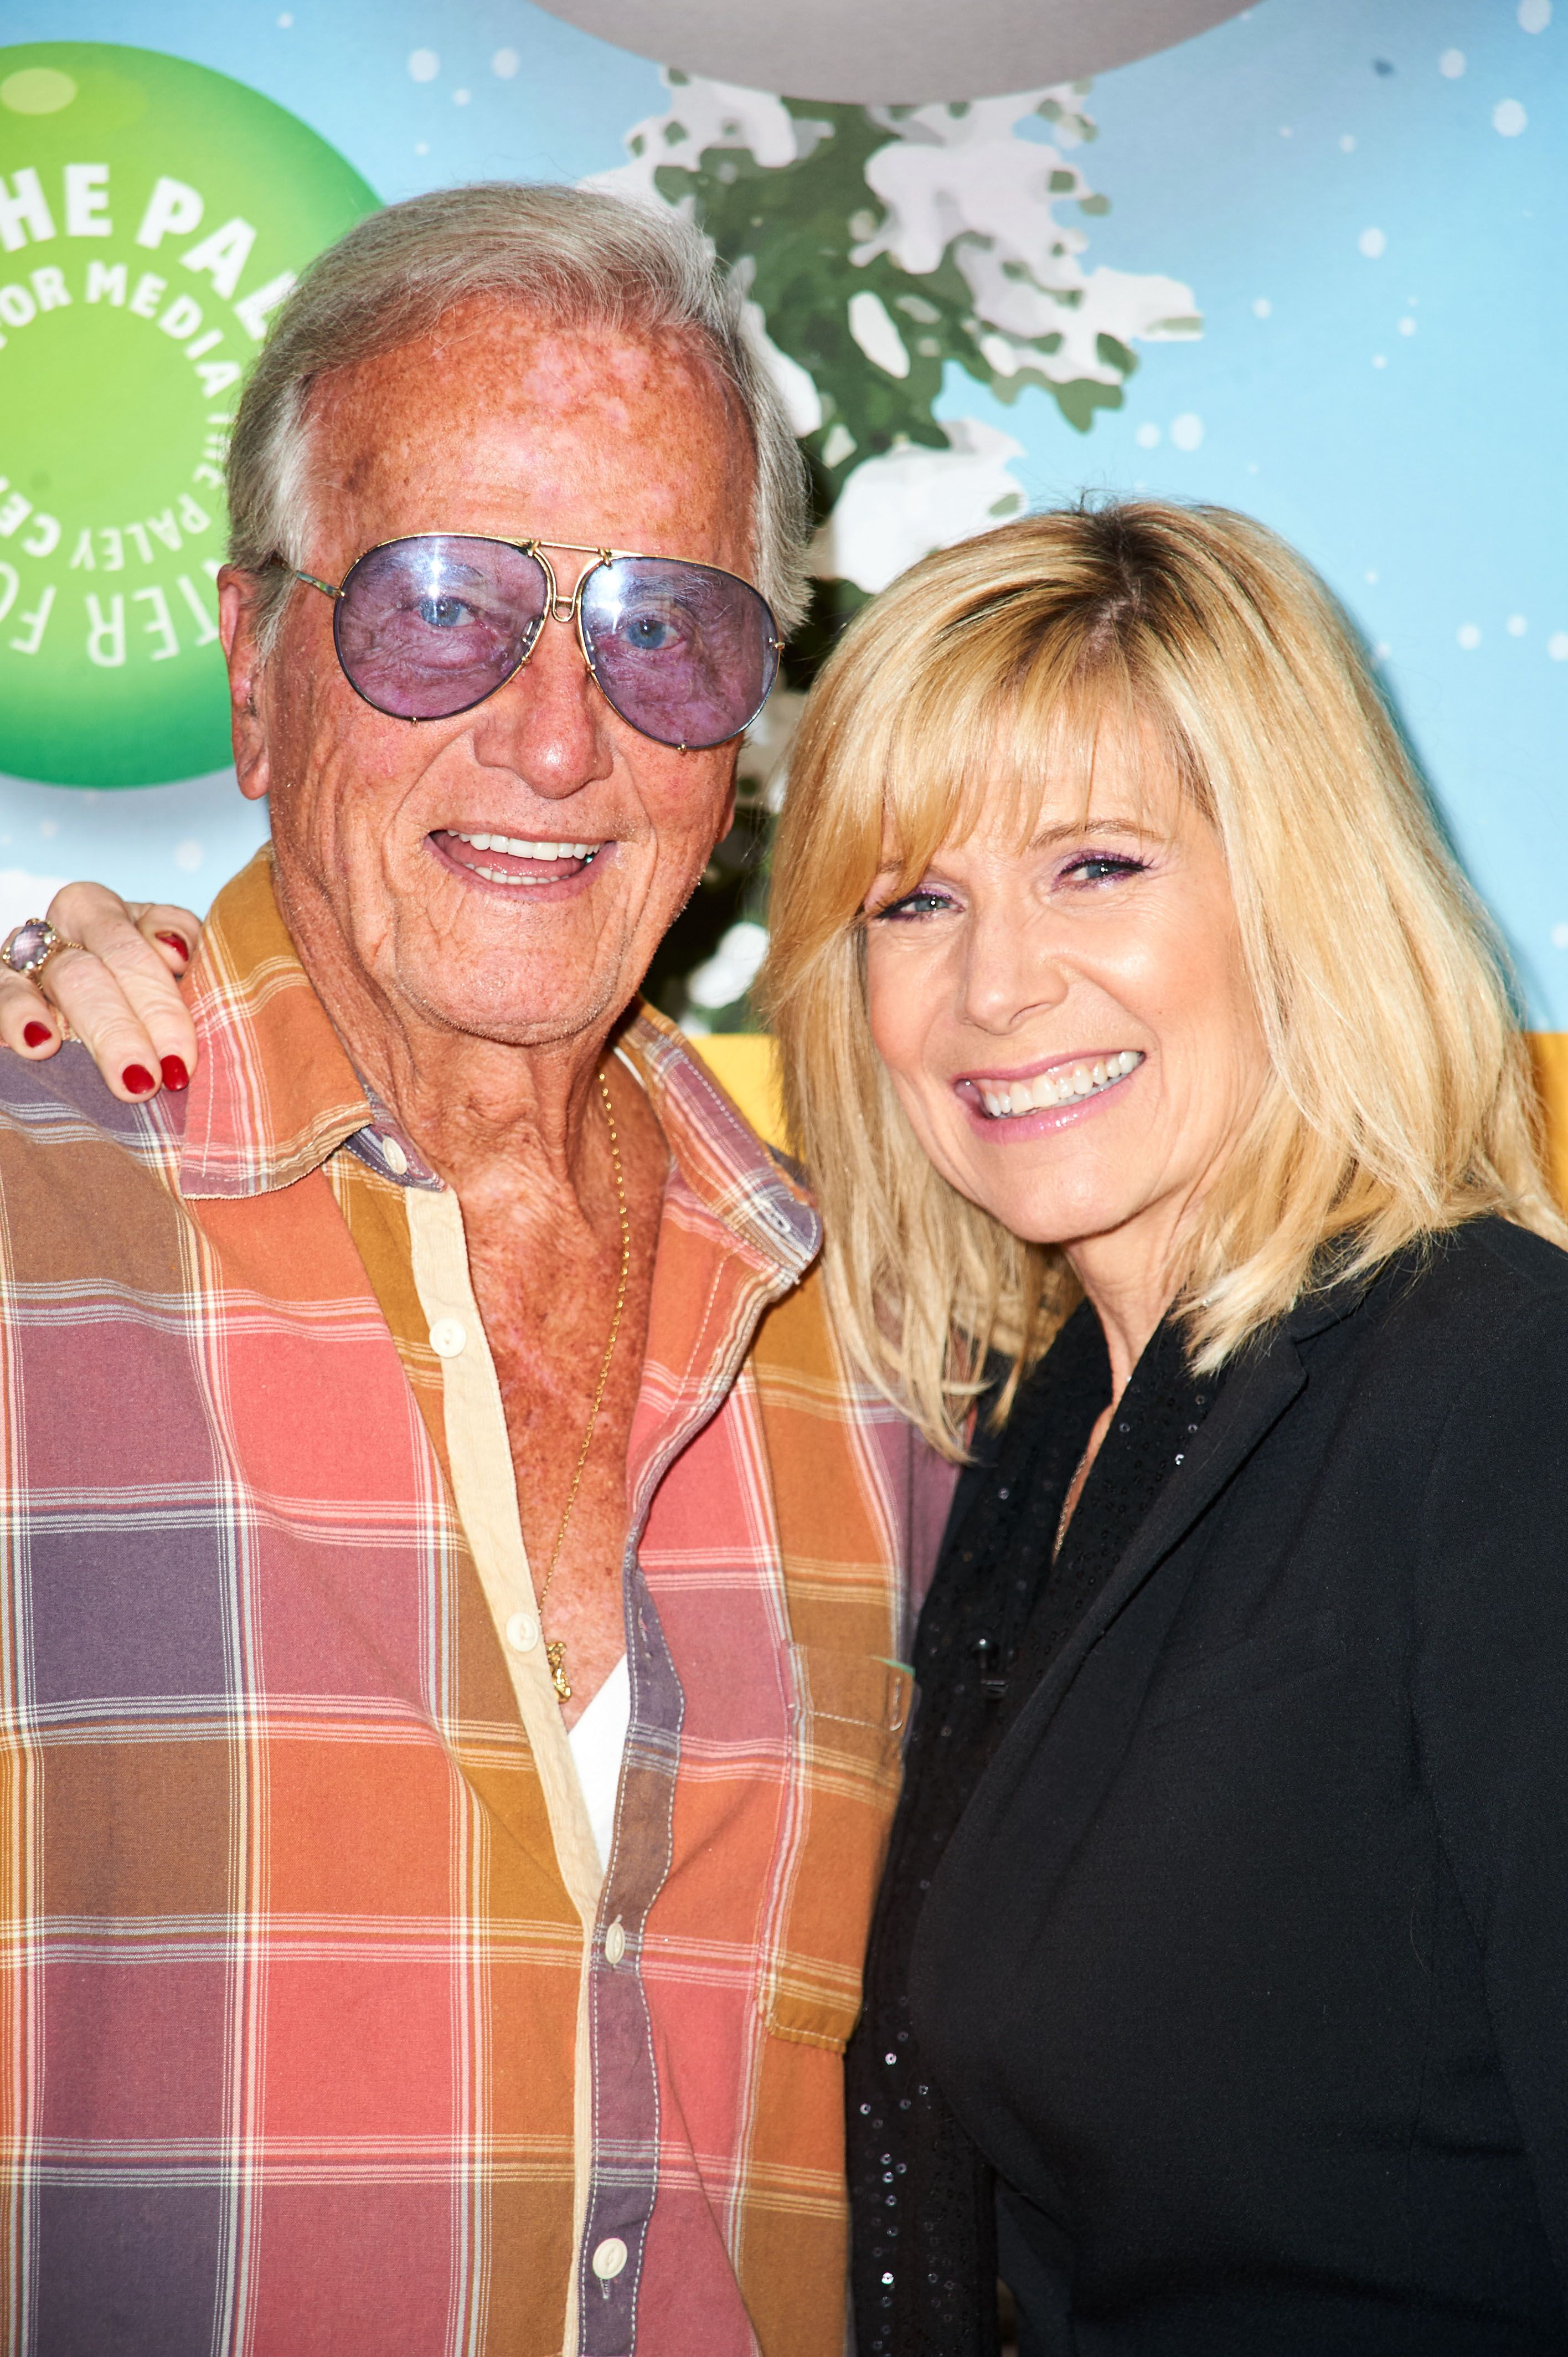 Pat Boone with father Pat Boone at The Paley Center Presents A Holiday Celebration With Debby Boone: You Light Up My Life 40th Anniversary Event in 2017 | Source: Getty Image